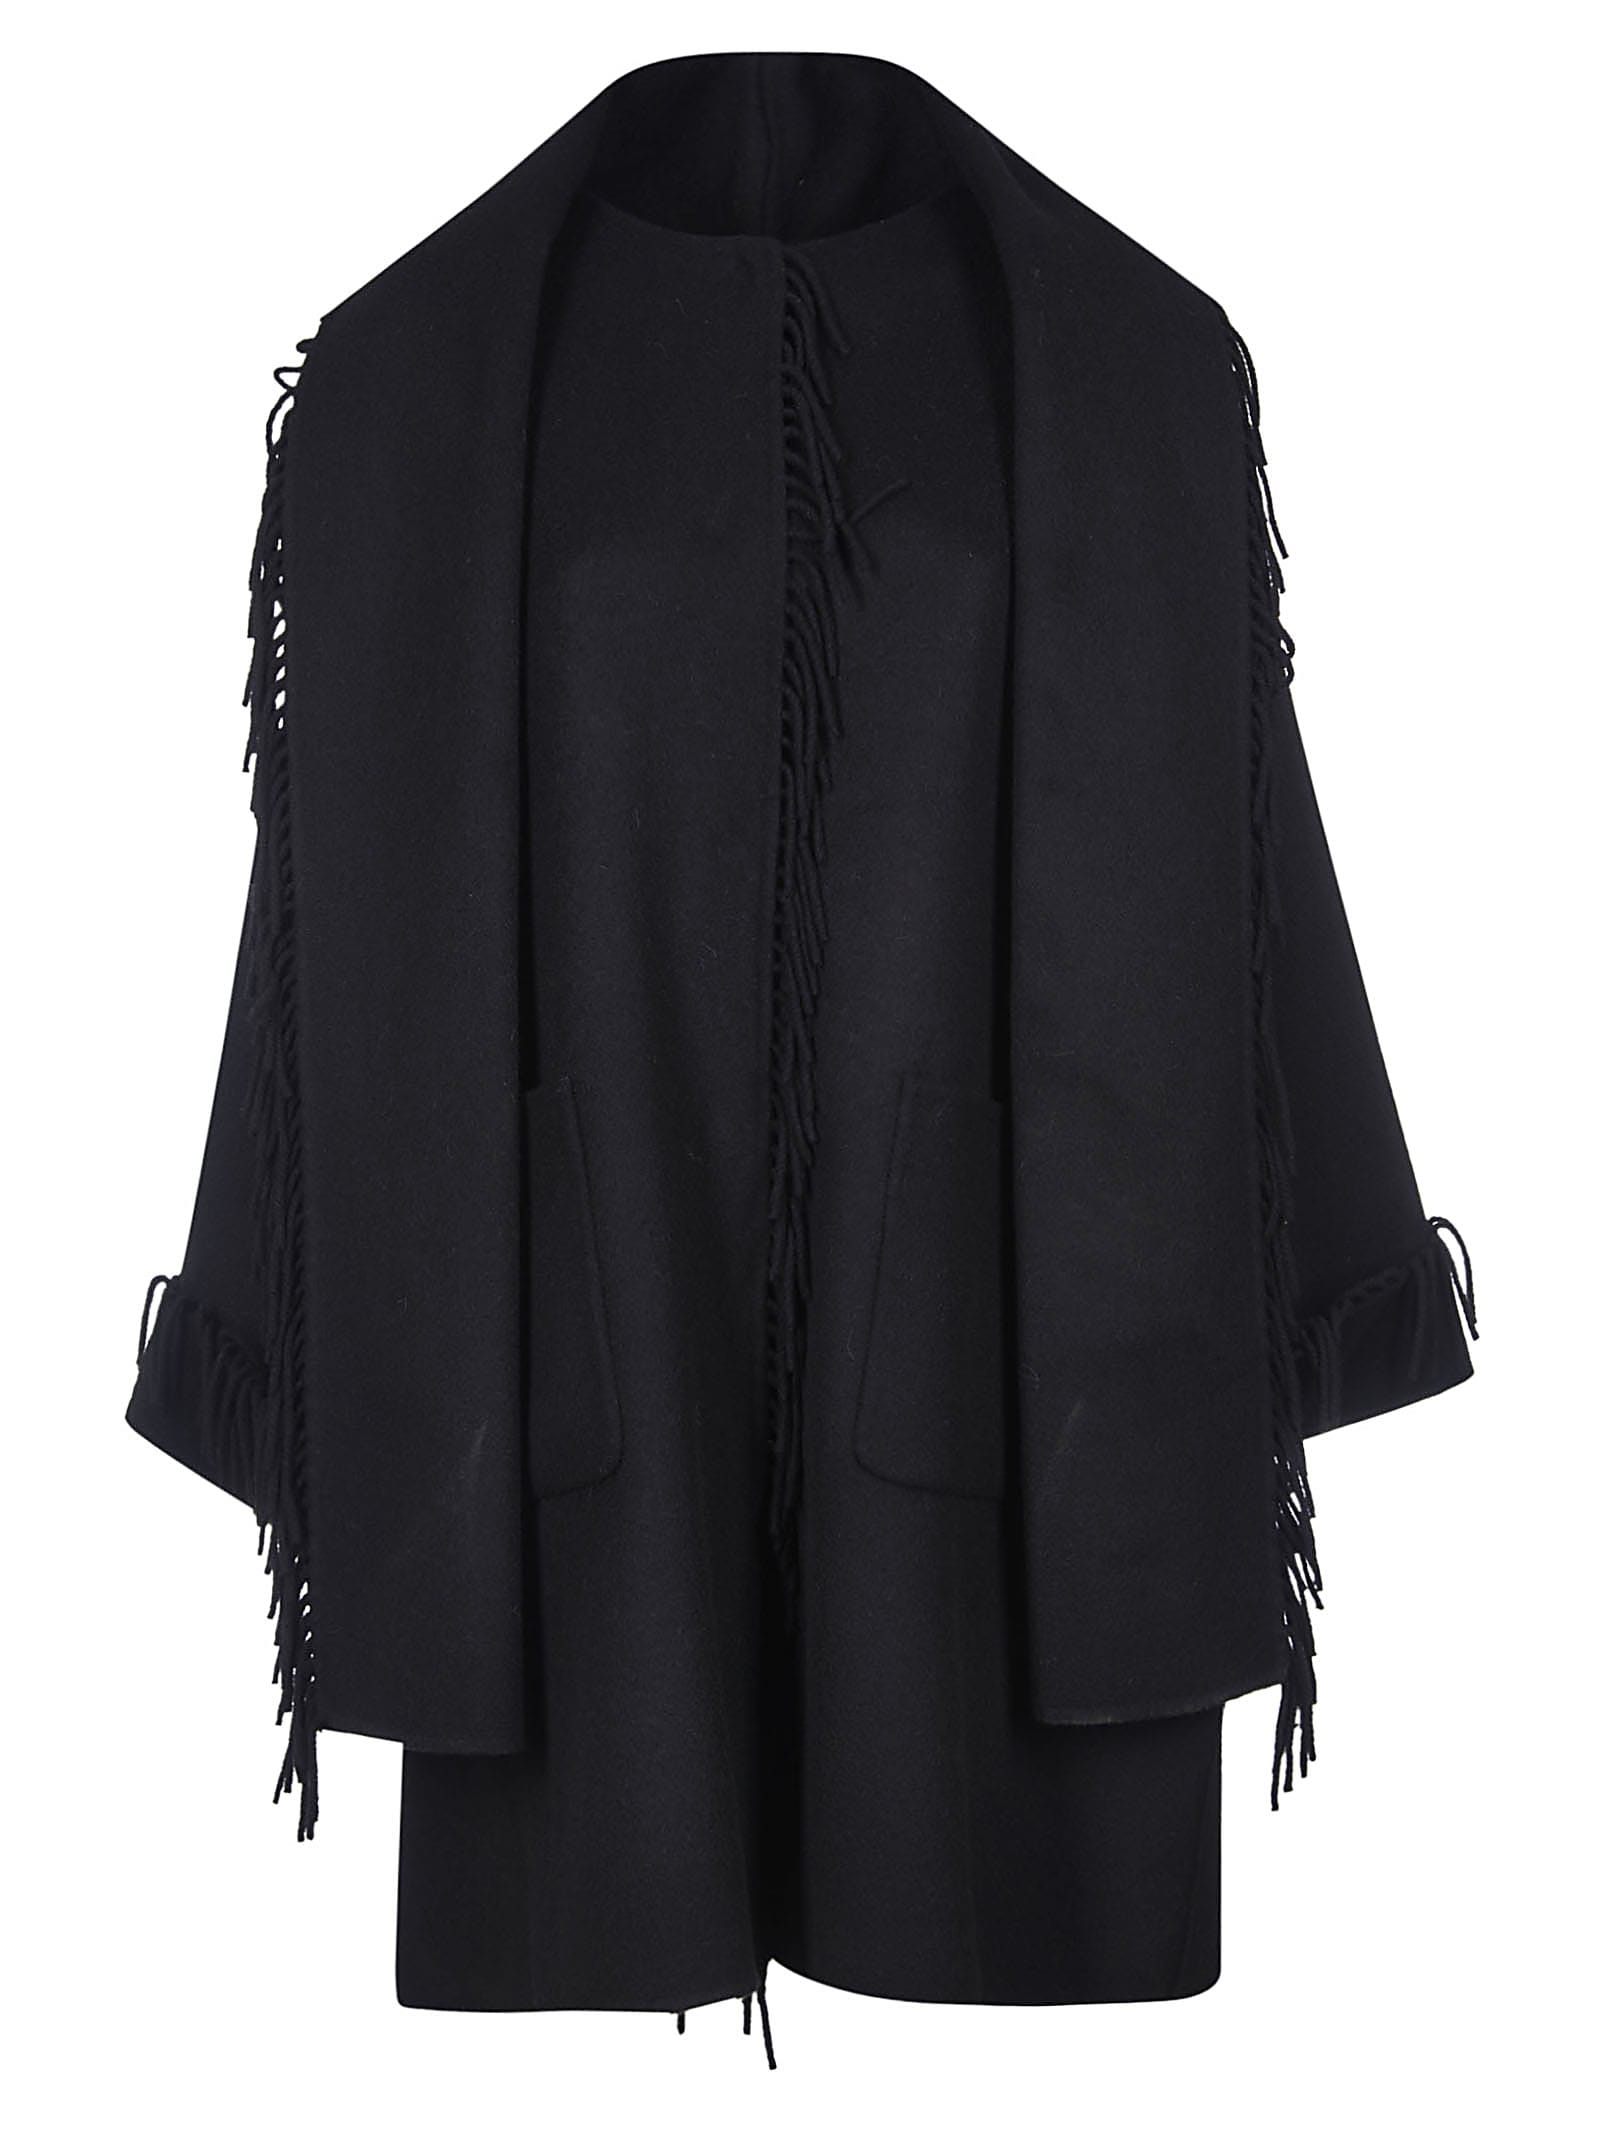 Parosh Fringed Trim Cape